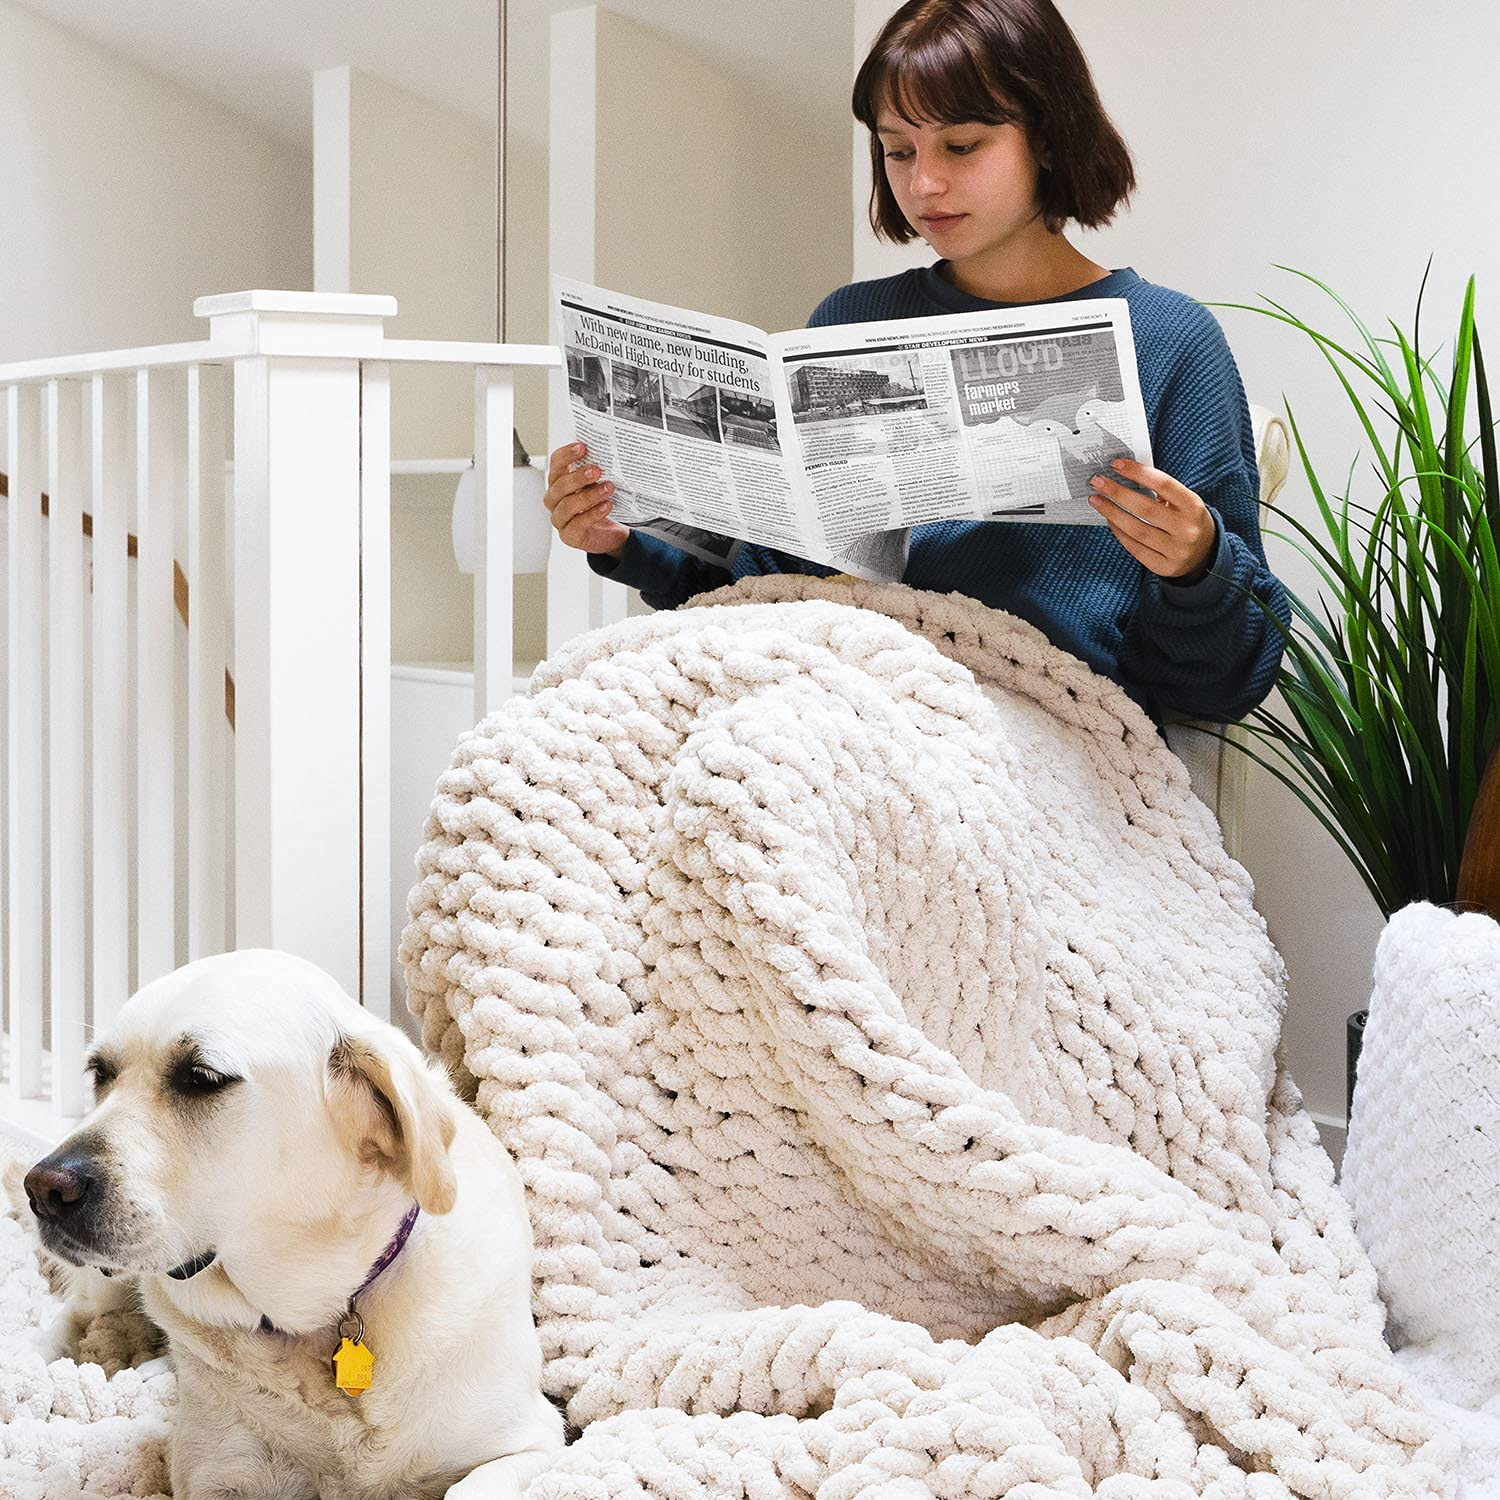 EASTSURE Free shipping Chunky Knit New products world's highest quality popular Blanket Cozy Throw Super Soft